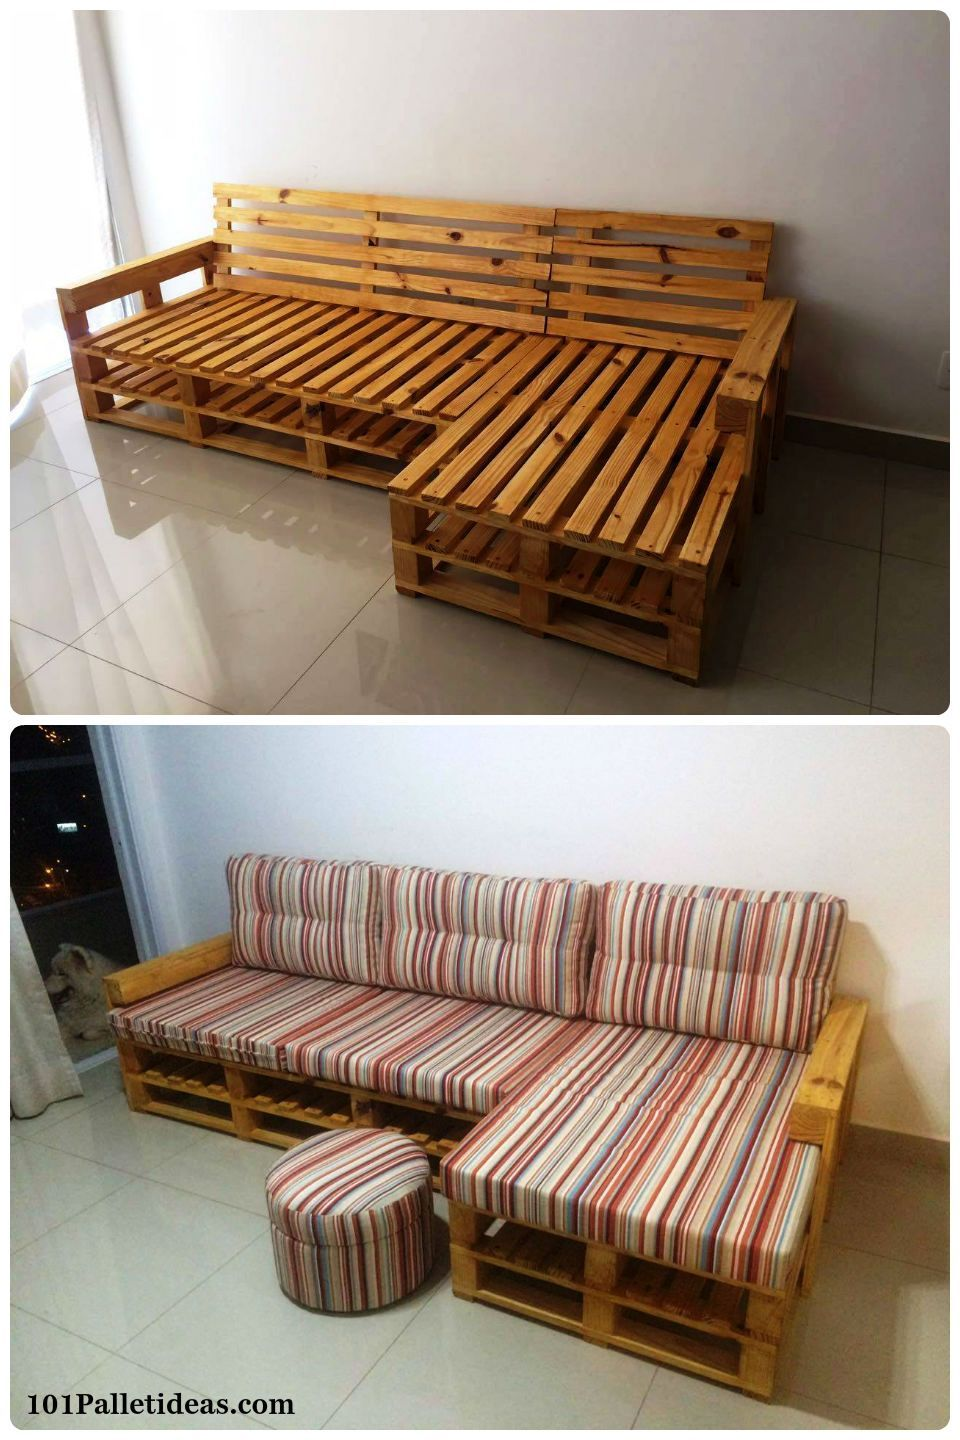 20 pallet ideas you can diy for your home pallet ideas for Diy pallet home decor